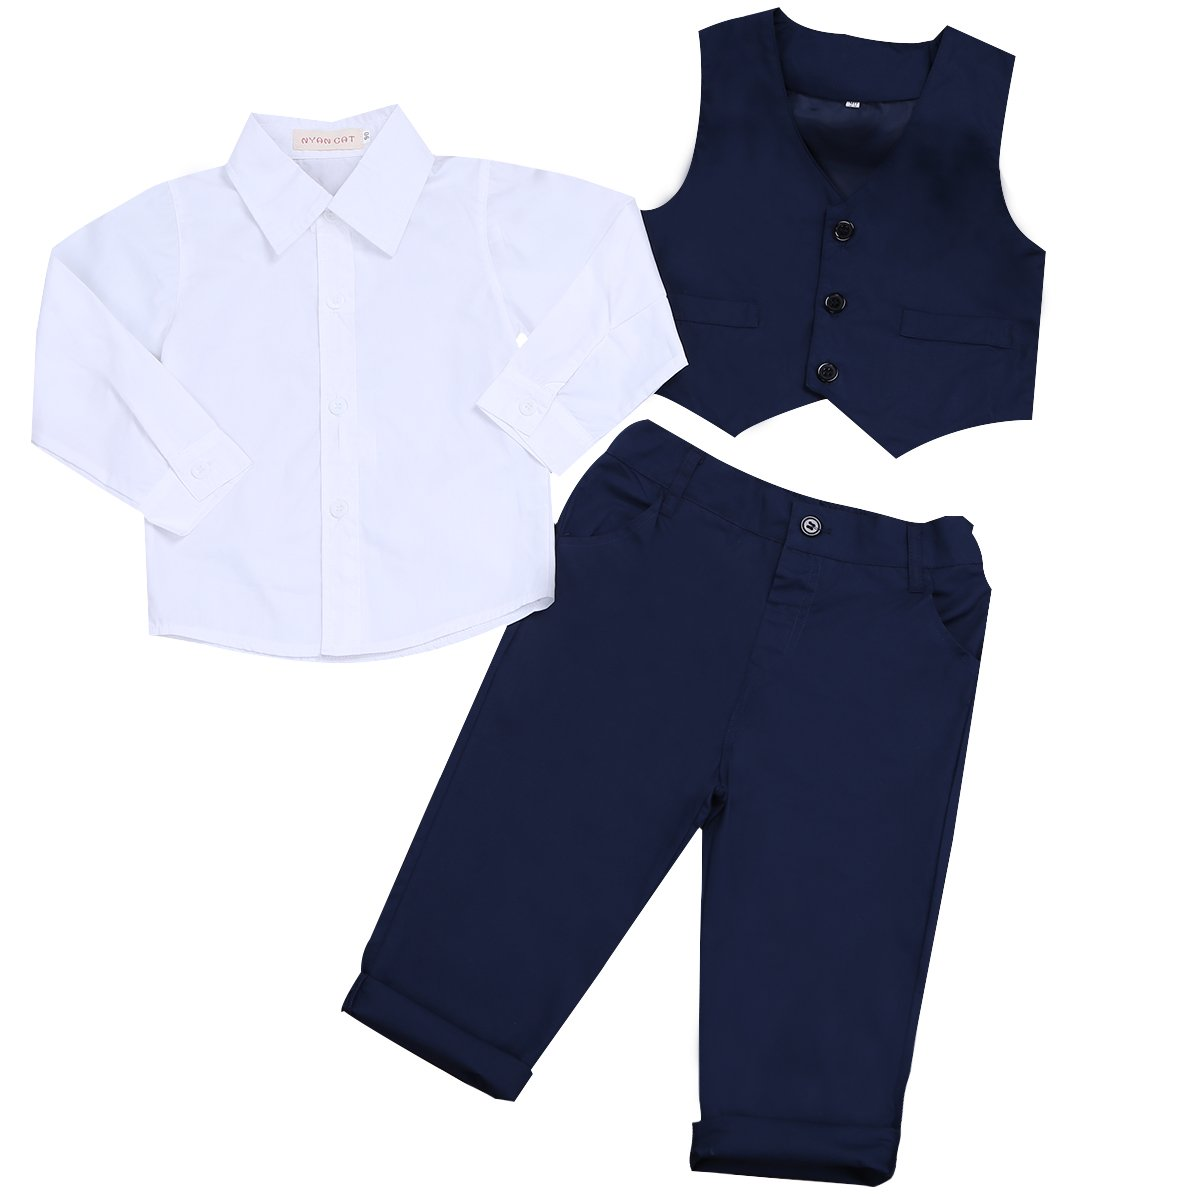 iEFiEL 3Pcs Kids Baby Boys Gentleman Tuxedo Wedding Outfits Top Shirt Pants with Vest Set Navy Blue+White 12-18 Months